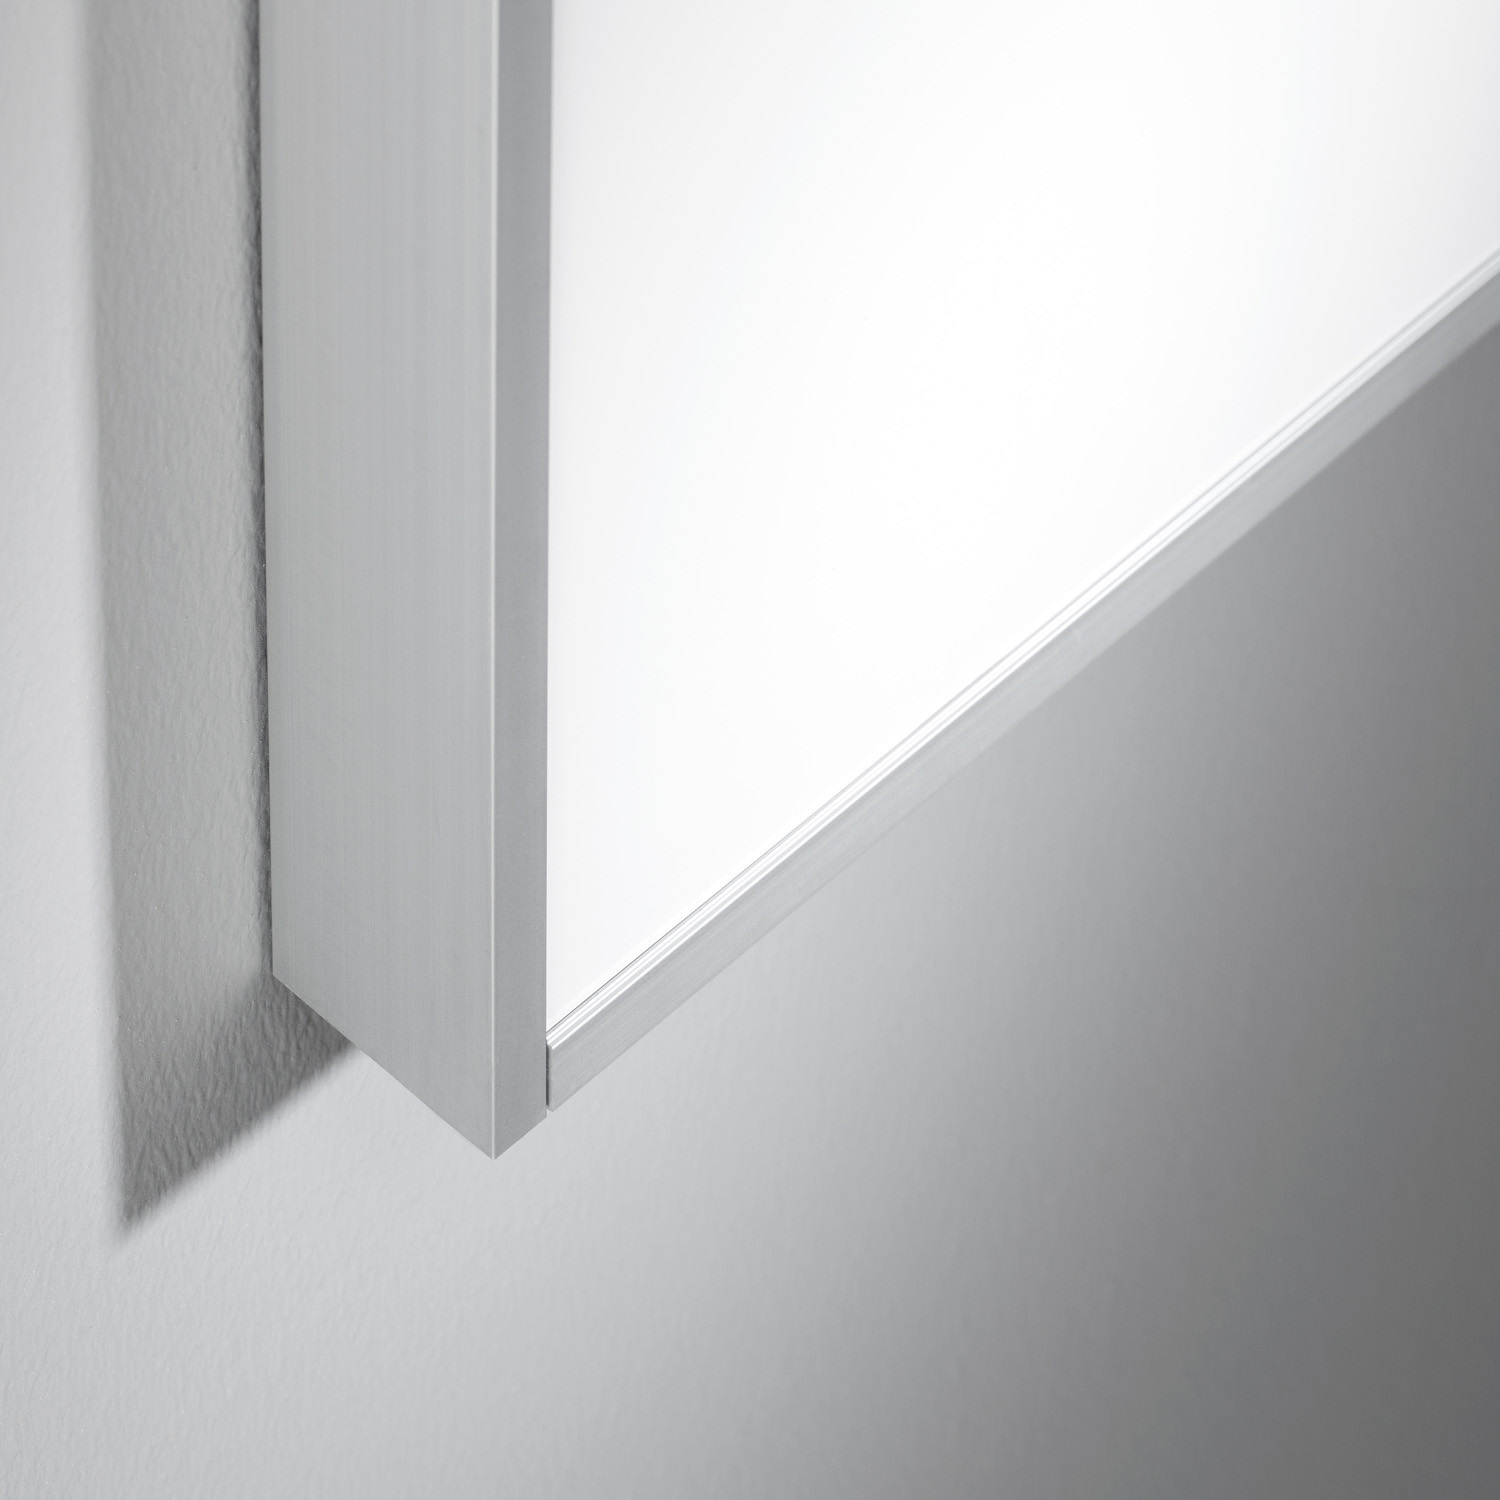 Acoustic Whiteboard with Sound Absorption